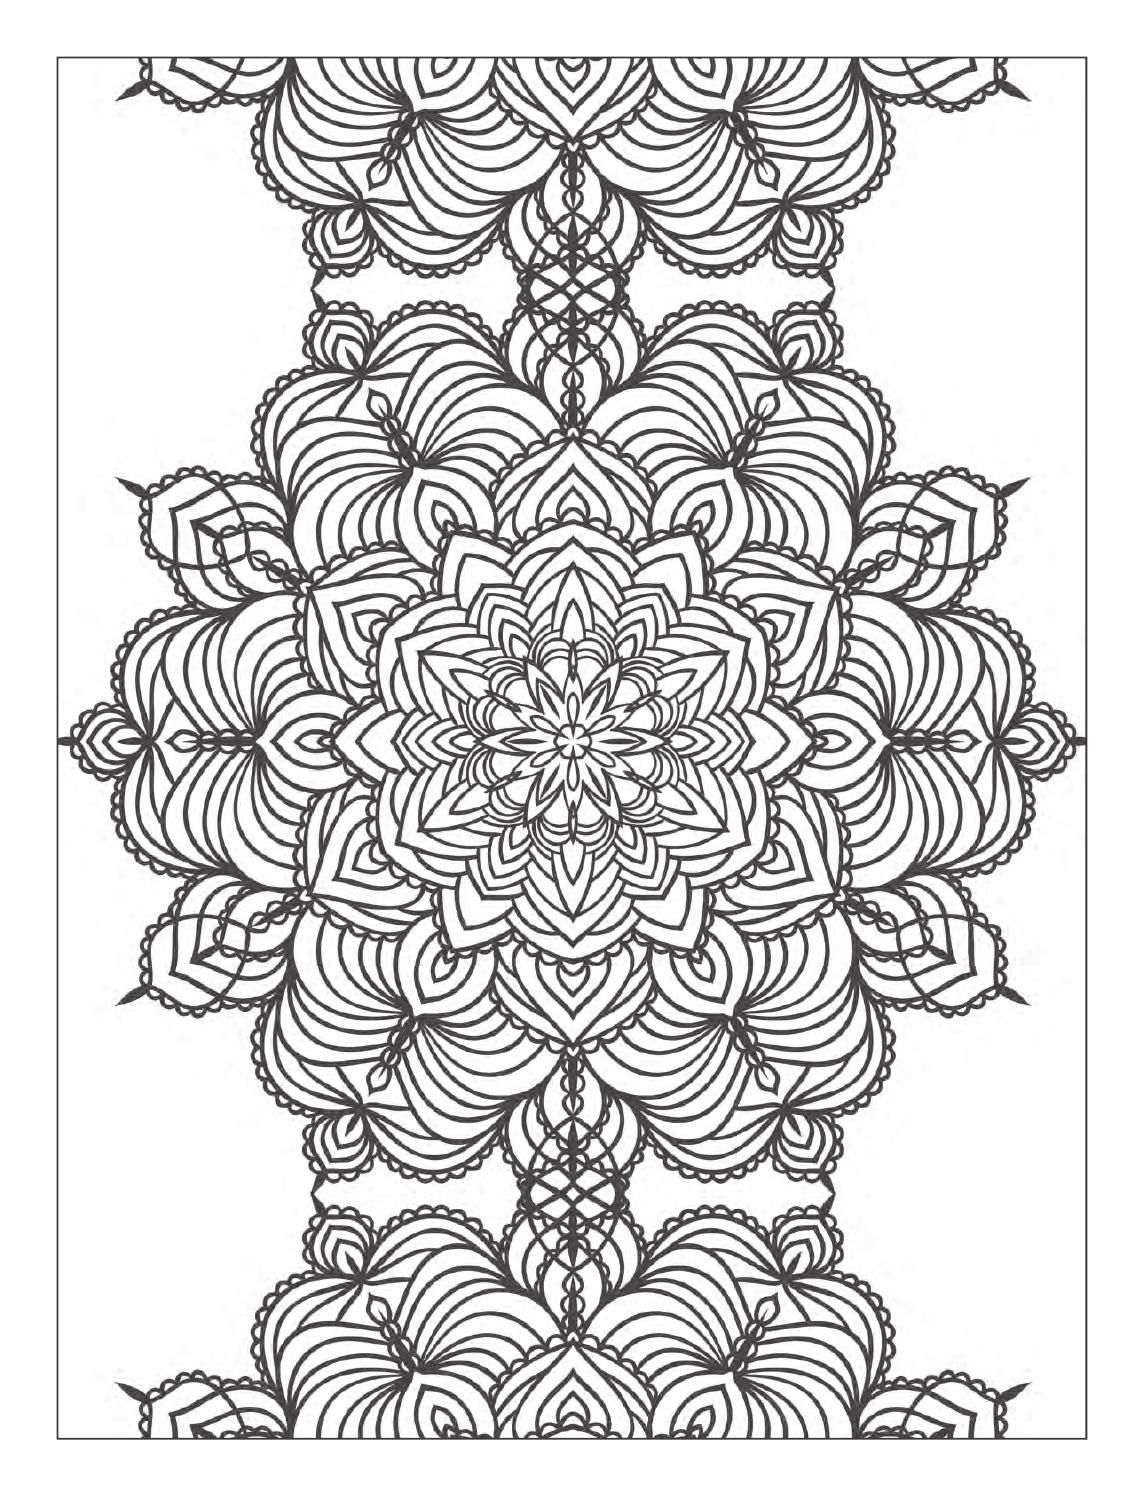 Uncategorized Meditation Coloring Pages yoga and meditation coloring book for adults with poses mandalas